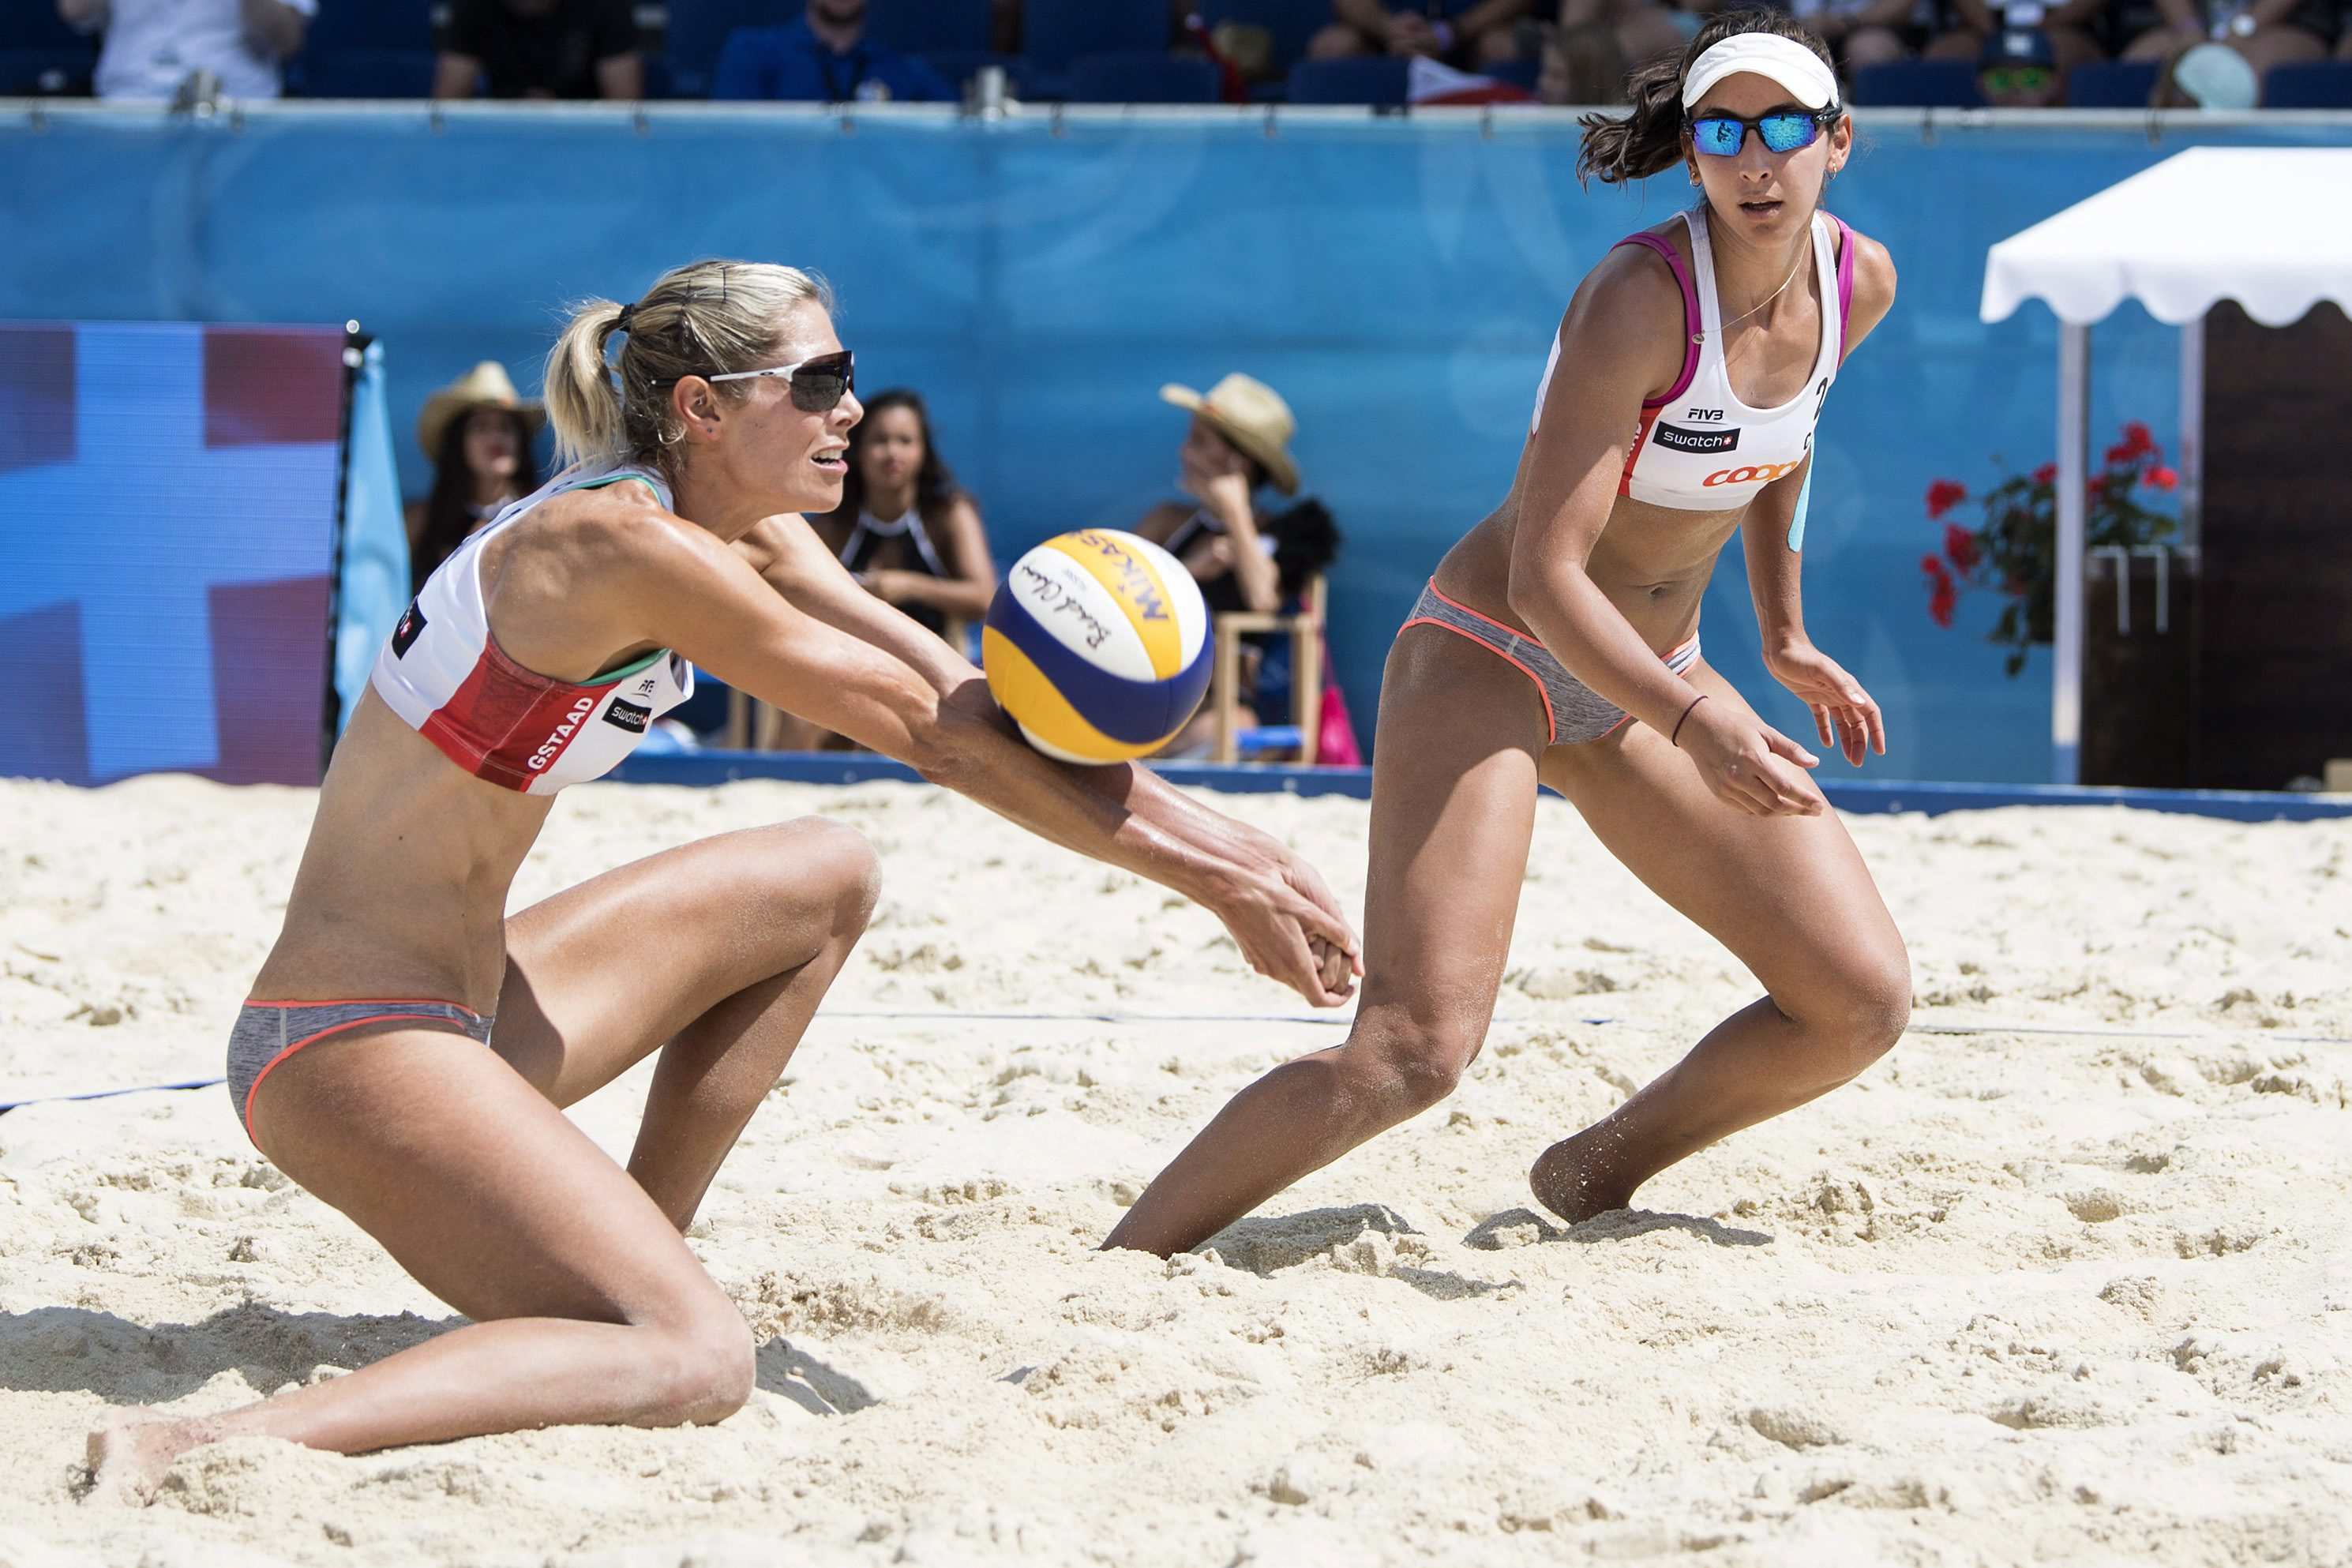 Sarah Pavan digs the ball next to Melissa Humana-Parades